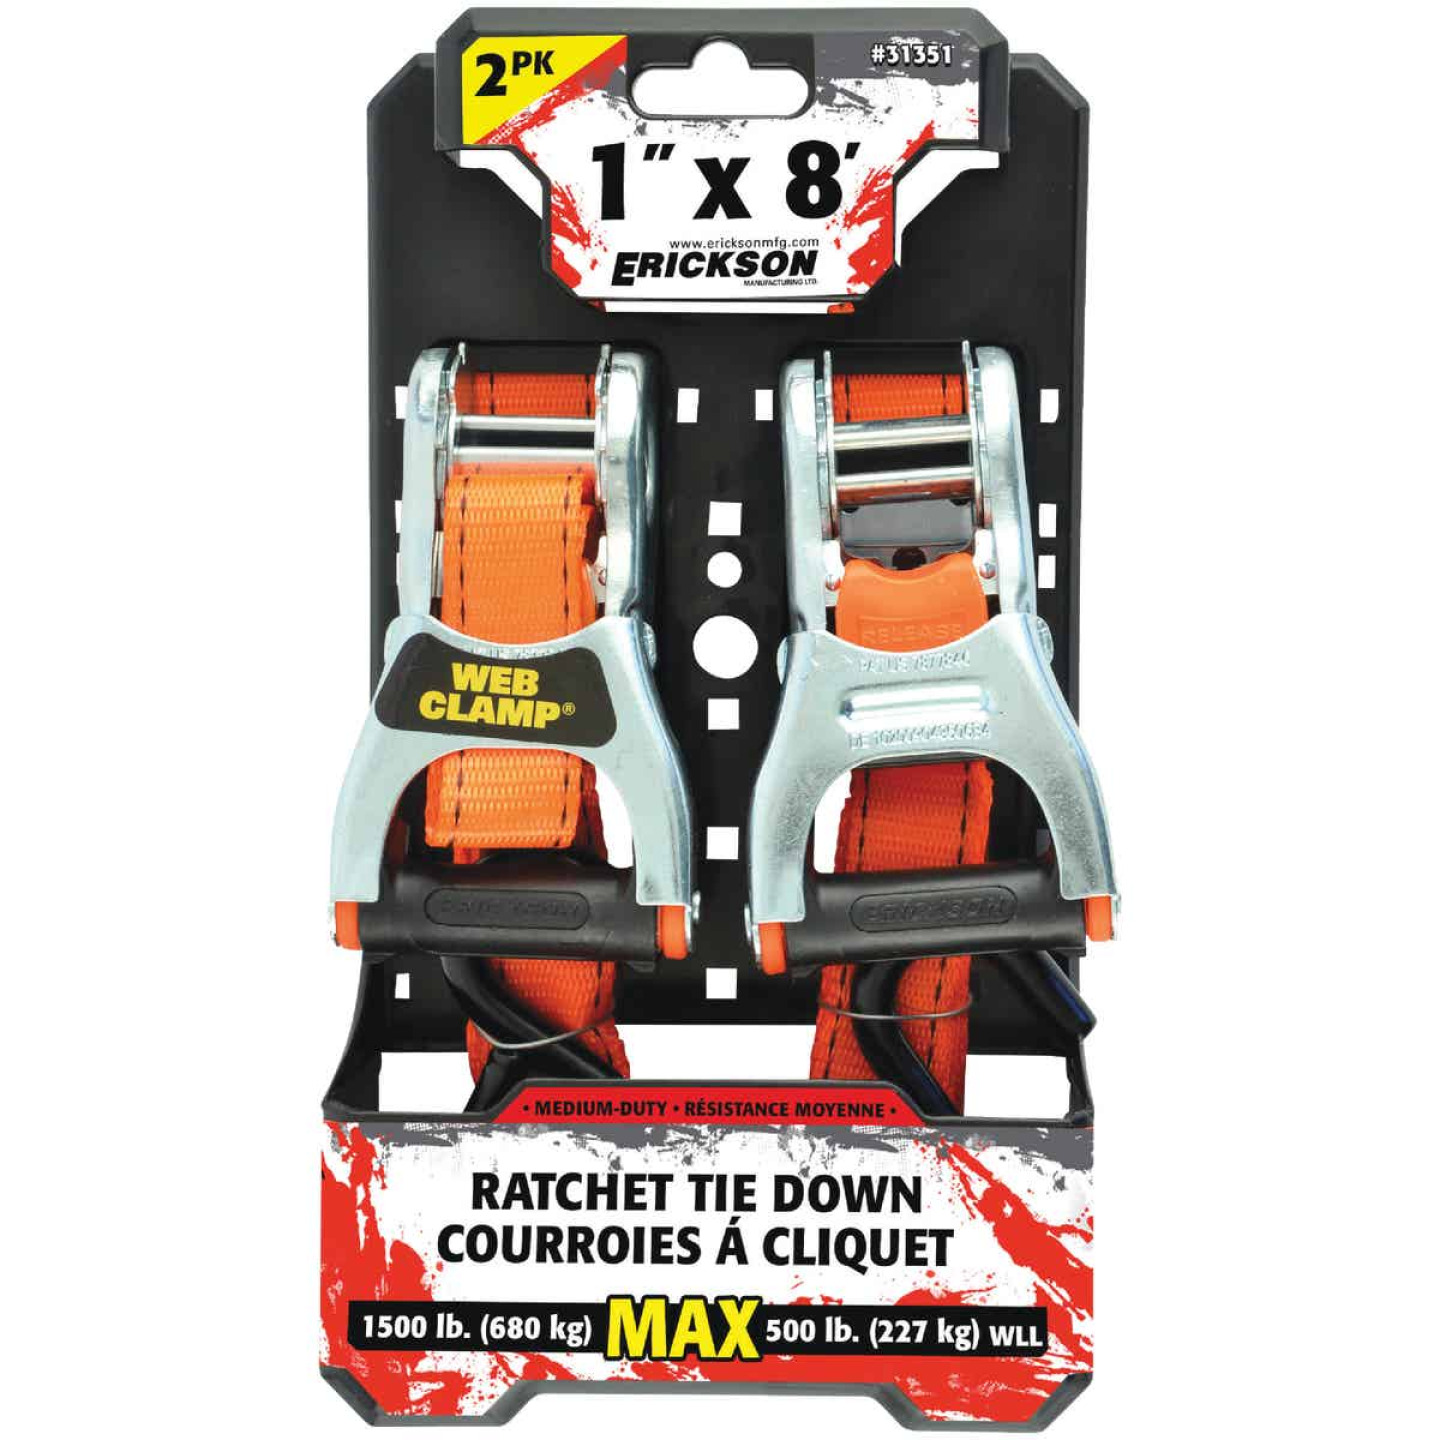 Erickson 1 In. x 8 Ft. Ratchet Strap with Web Clamp (2-Pack) Image 2